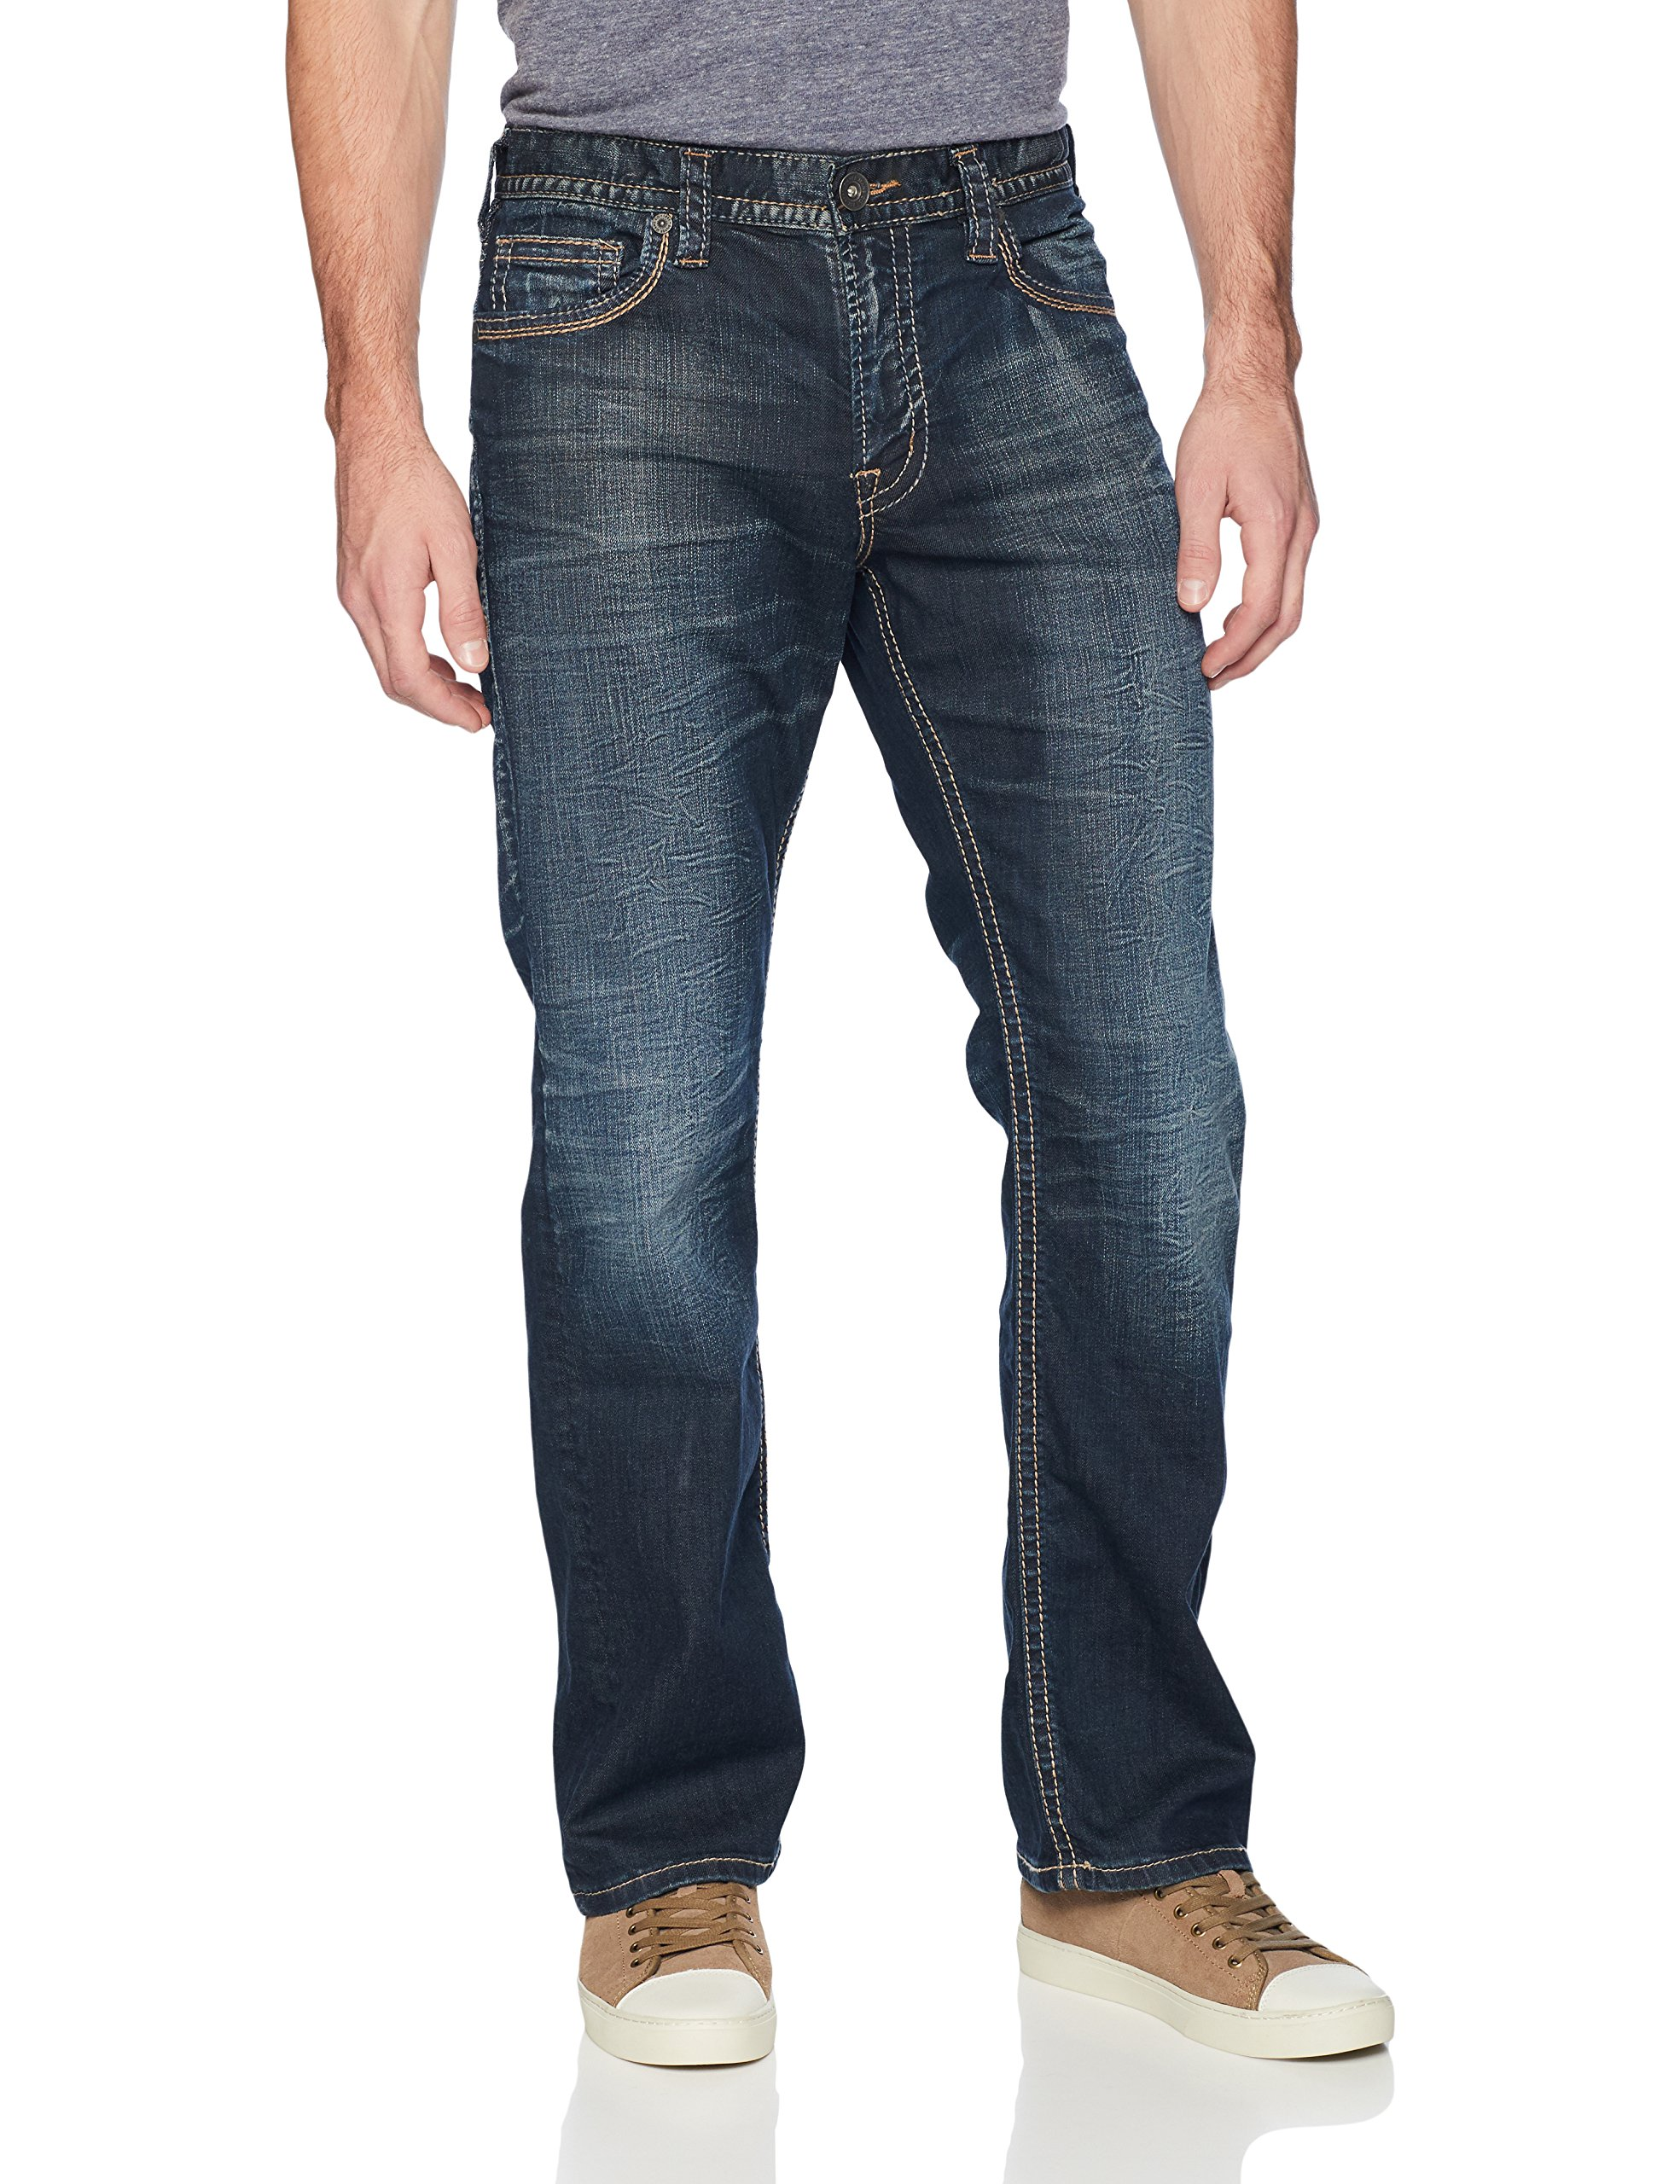 Silver Jeans Men's Zac Relaxed Fit Straight Leg Jeans Pants, Dark Hand Sand, 33x34